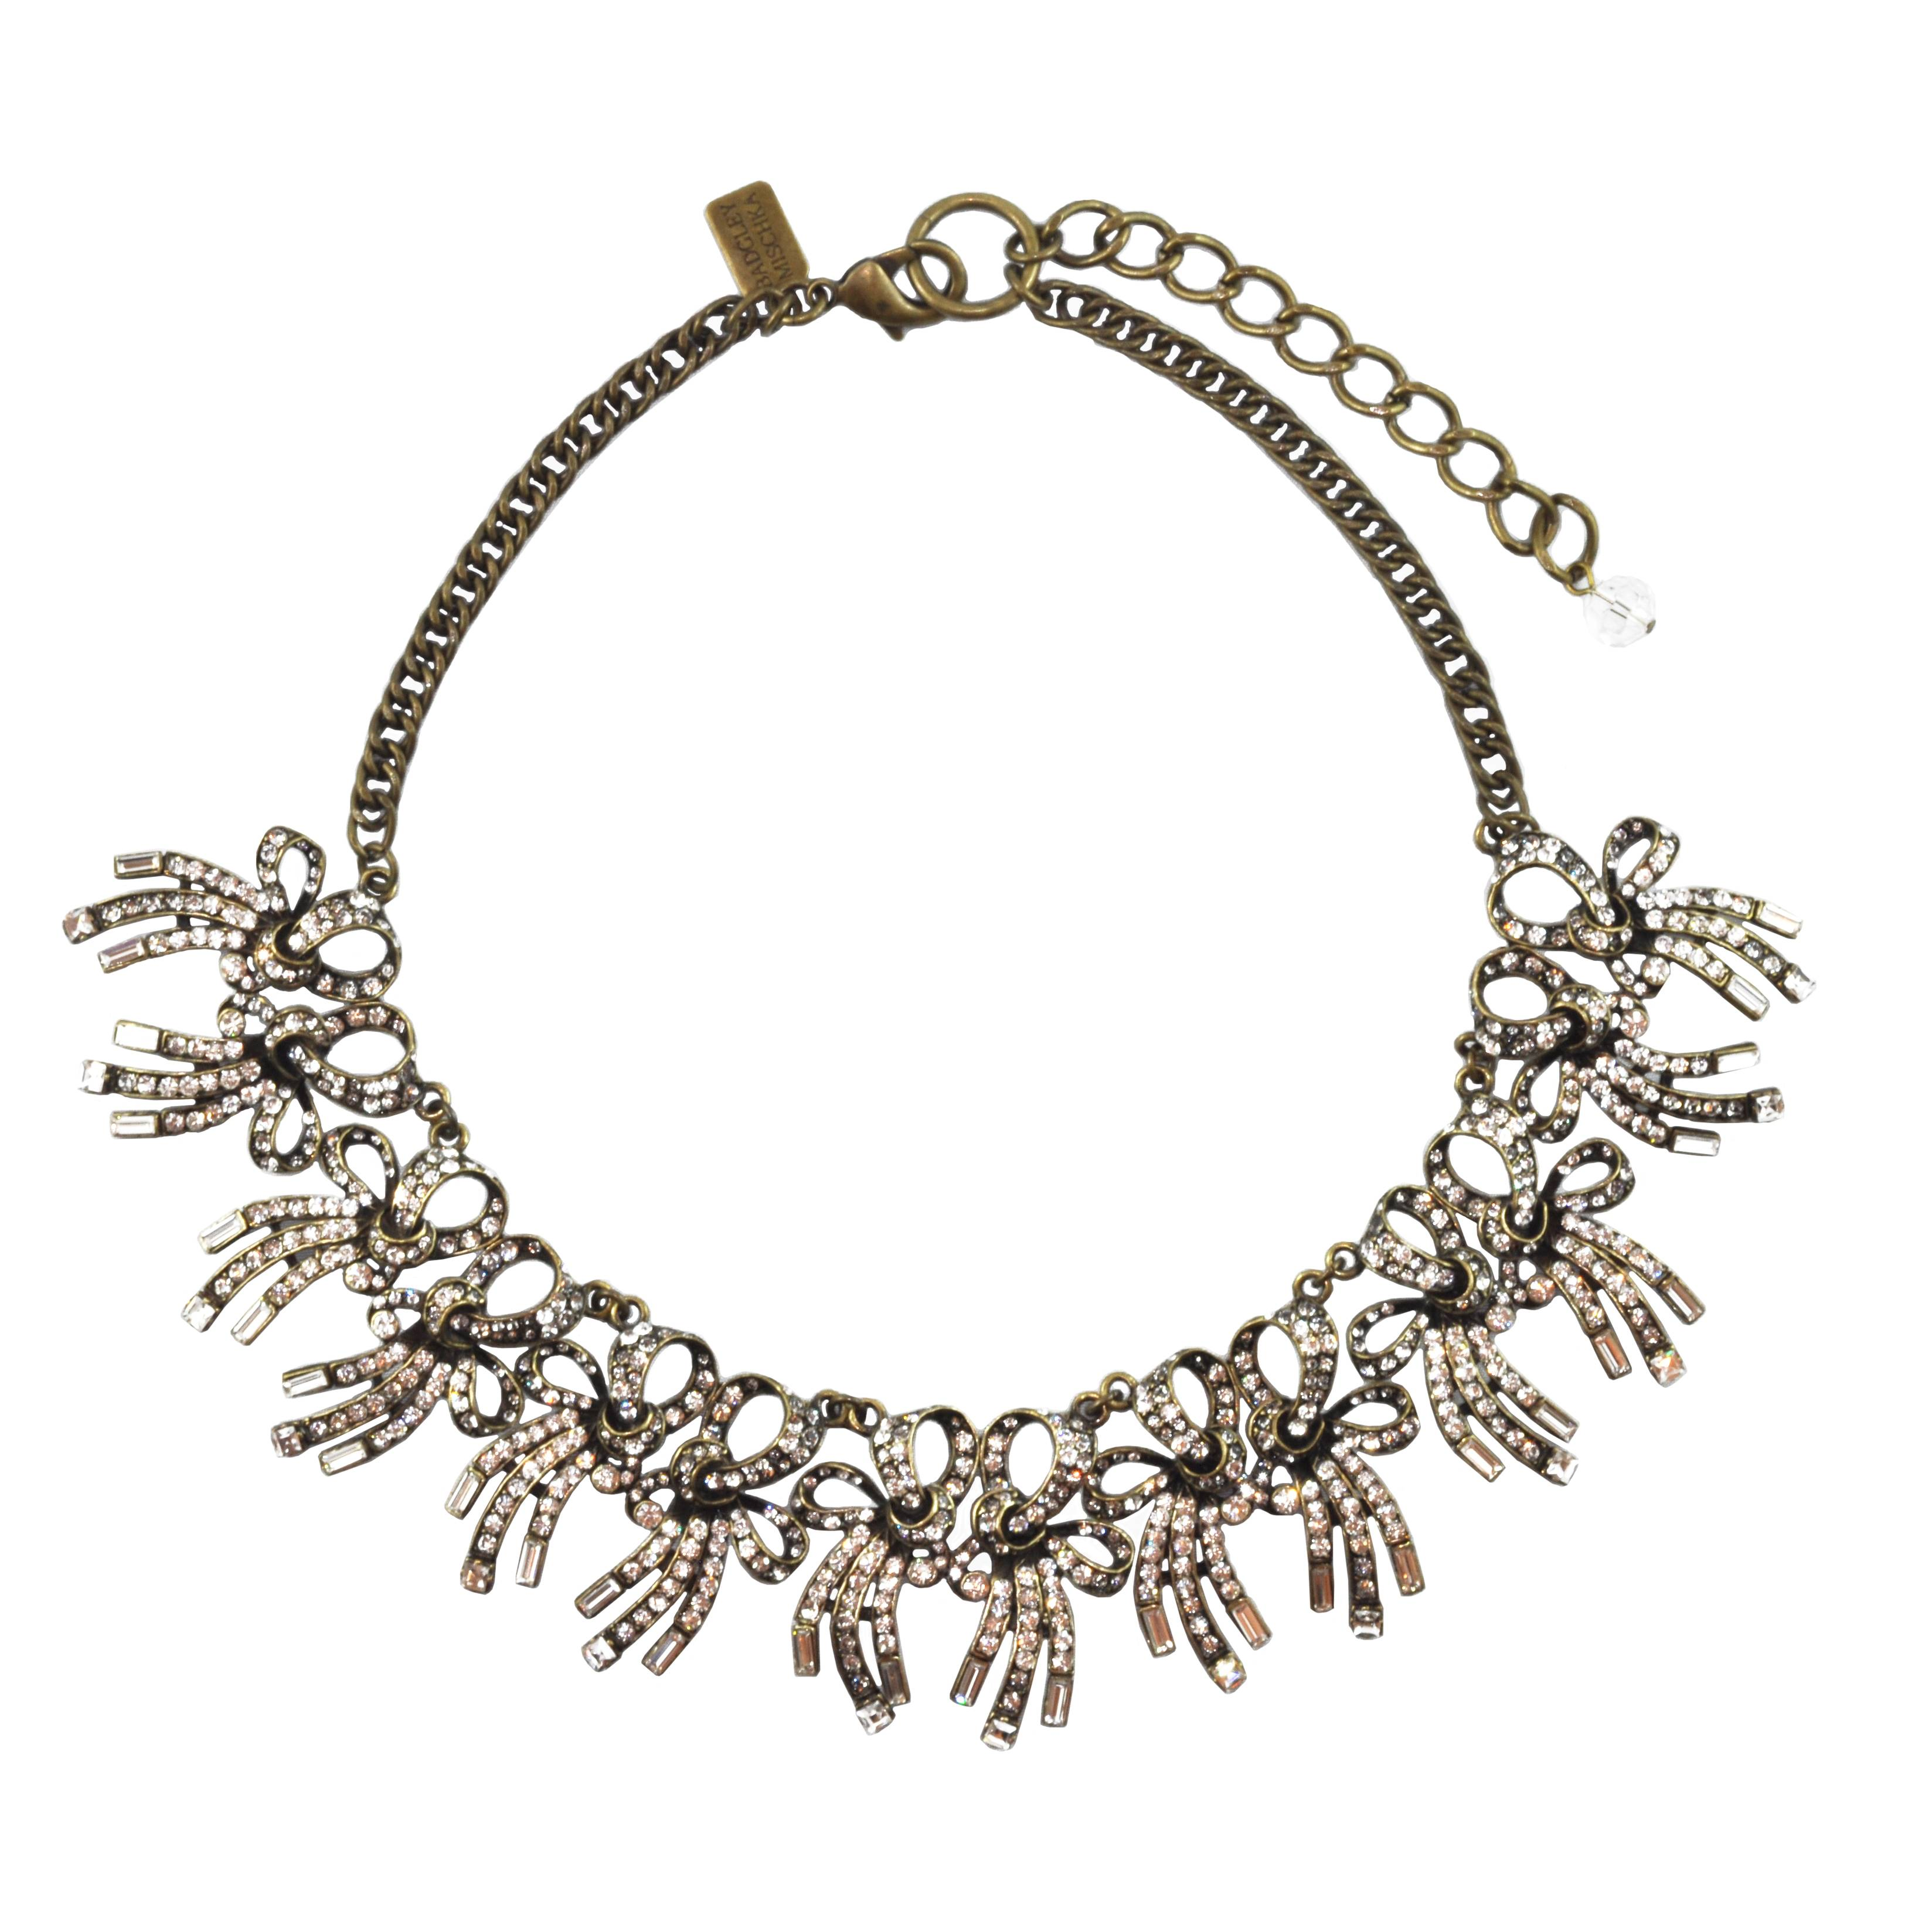 Sophie's Closet_Badgley Mischka_Multi Bow Necklace_AED 1880_£314.79